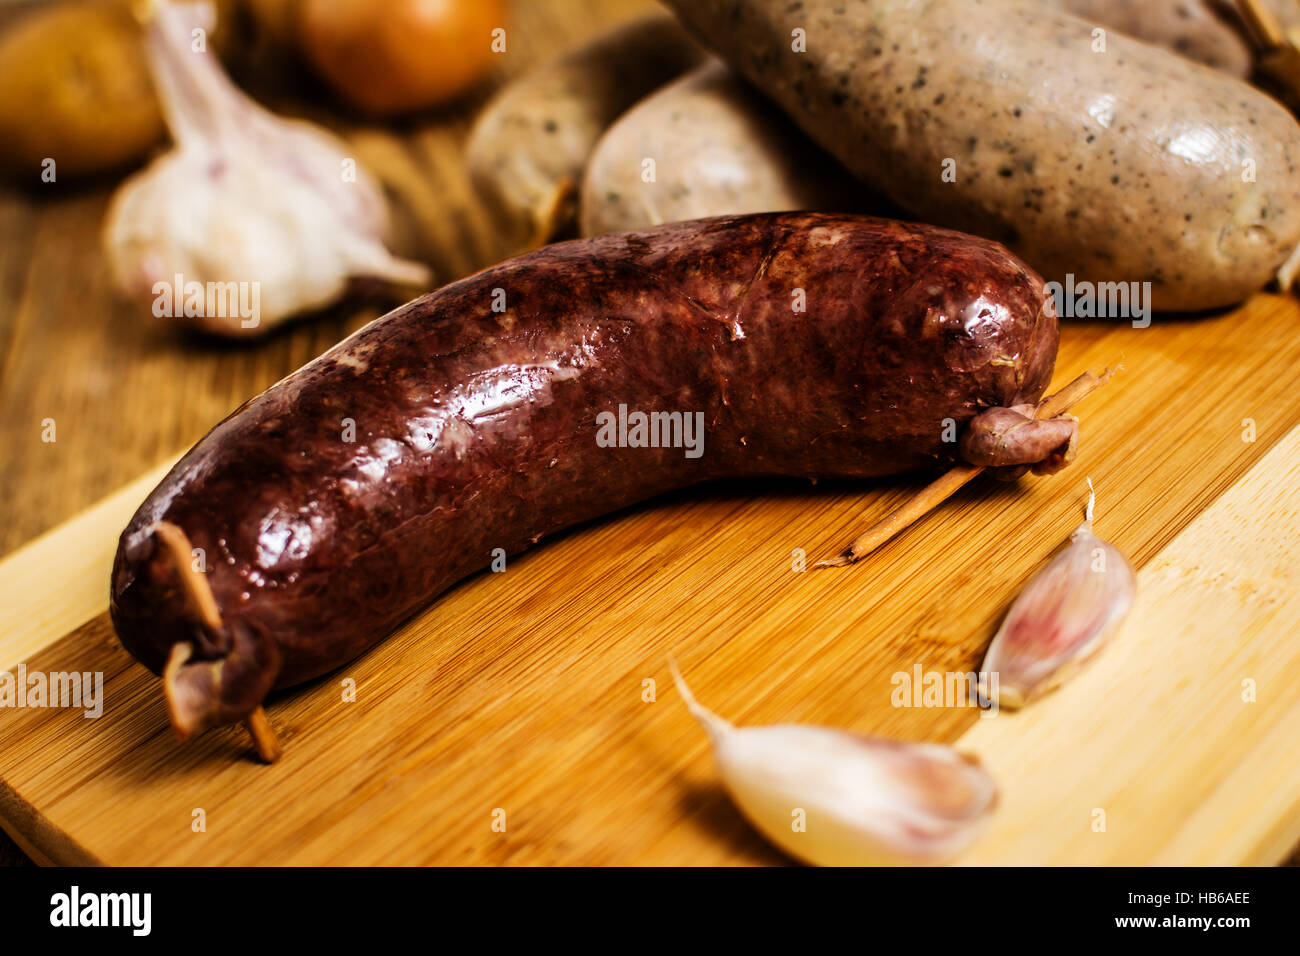 Sausage Home, a recipe in Ukrainian. Blood sausage and blood with liver